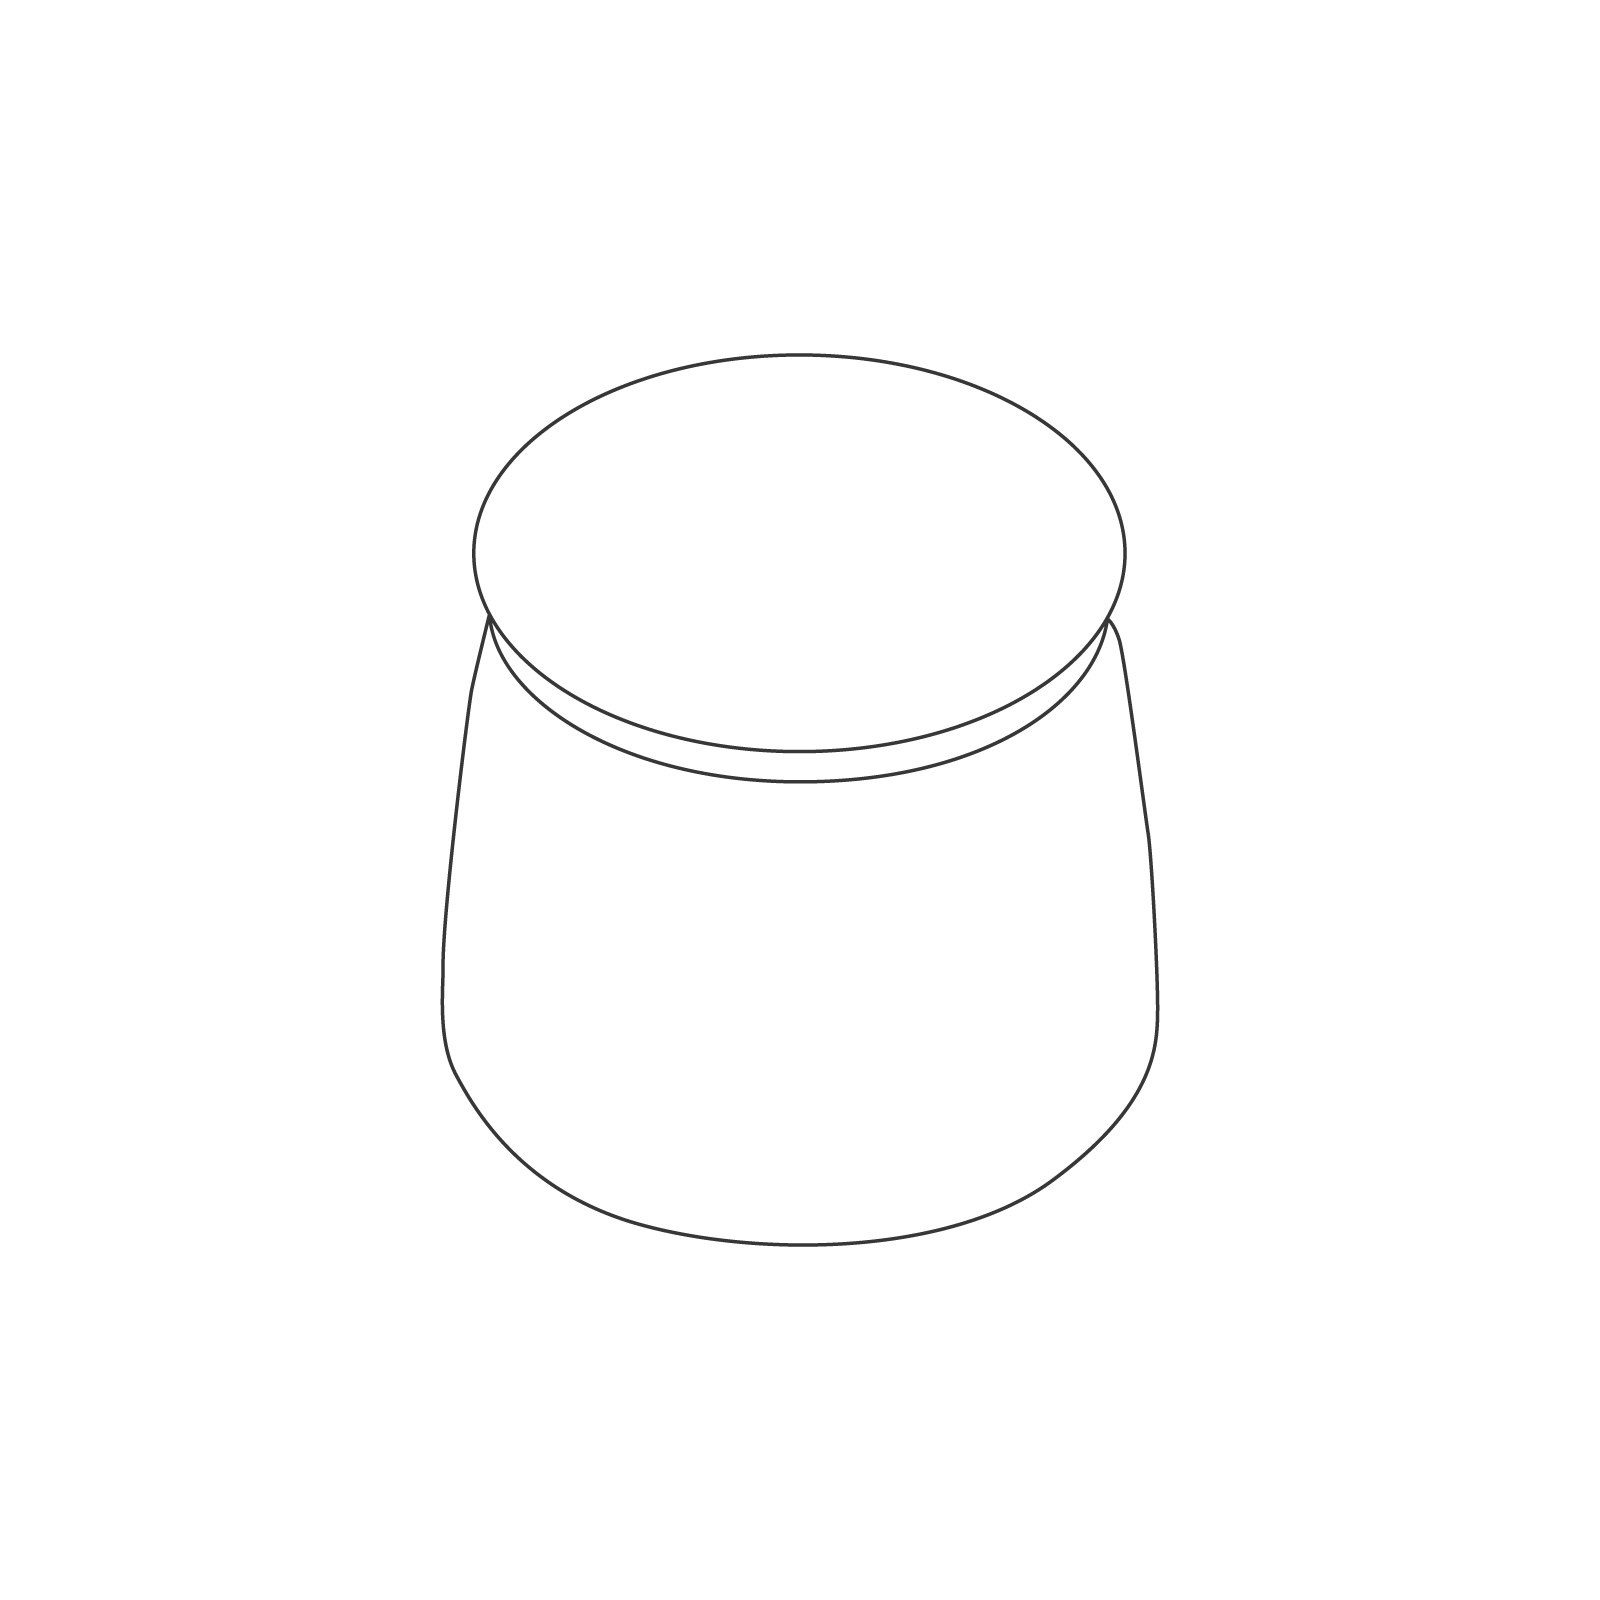 A line drawing - Lasso Stool–1 Seat